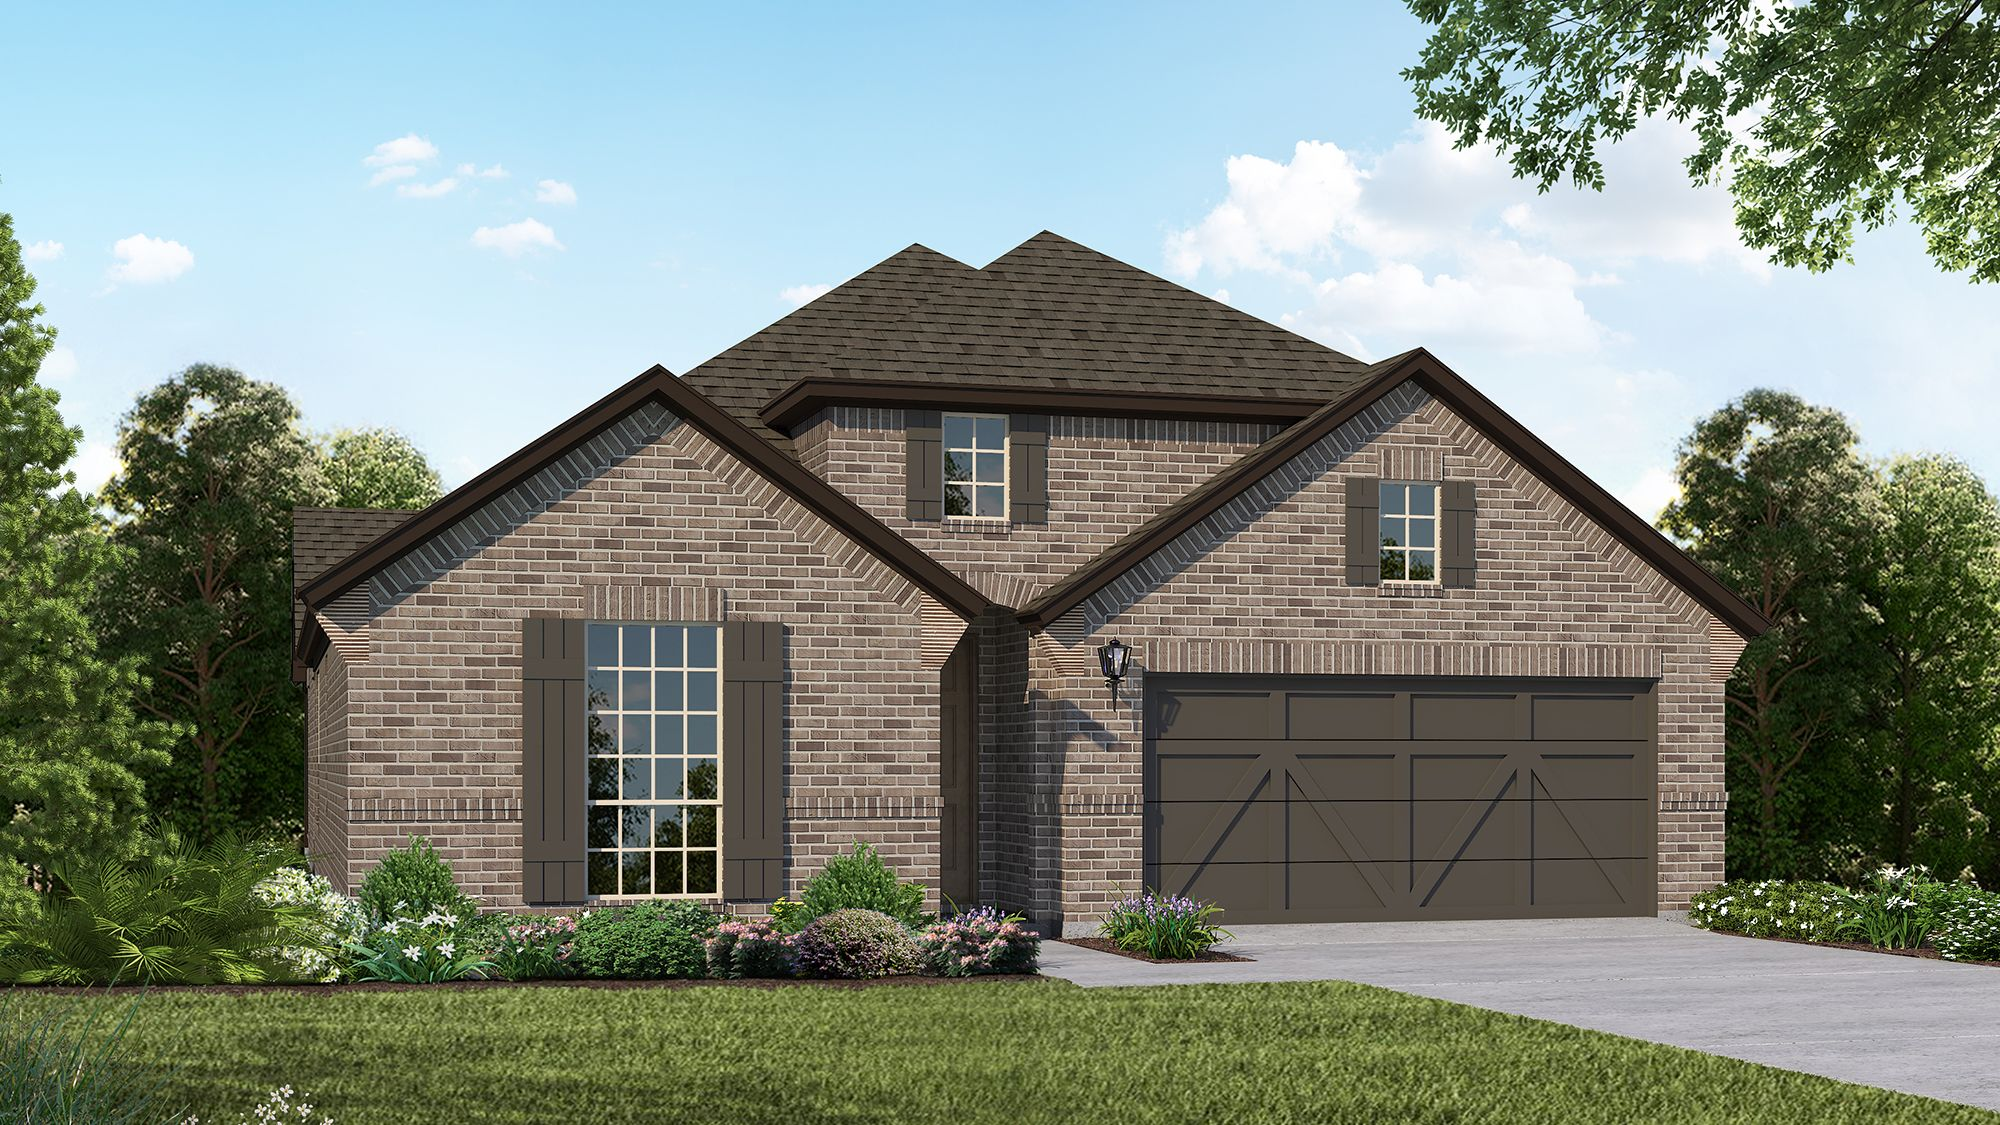 Plan 1523 Elevation B by American Legend Homes